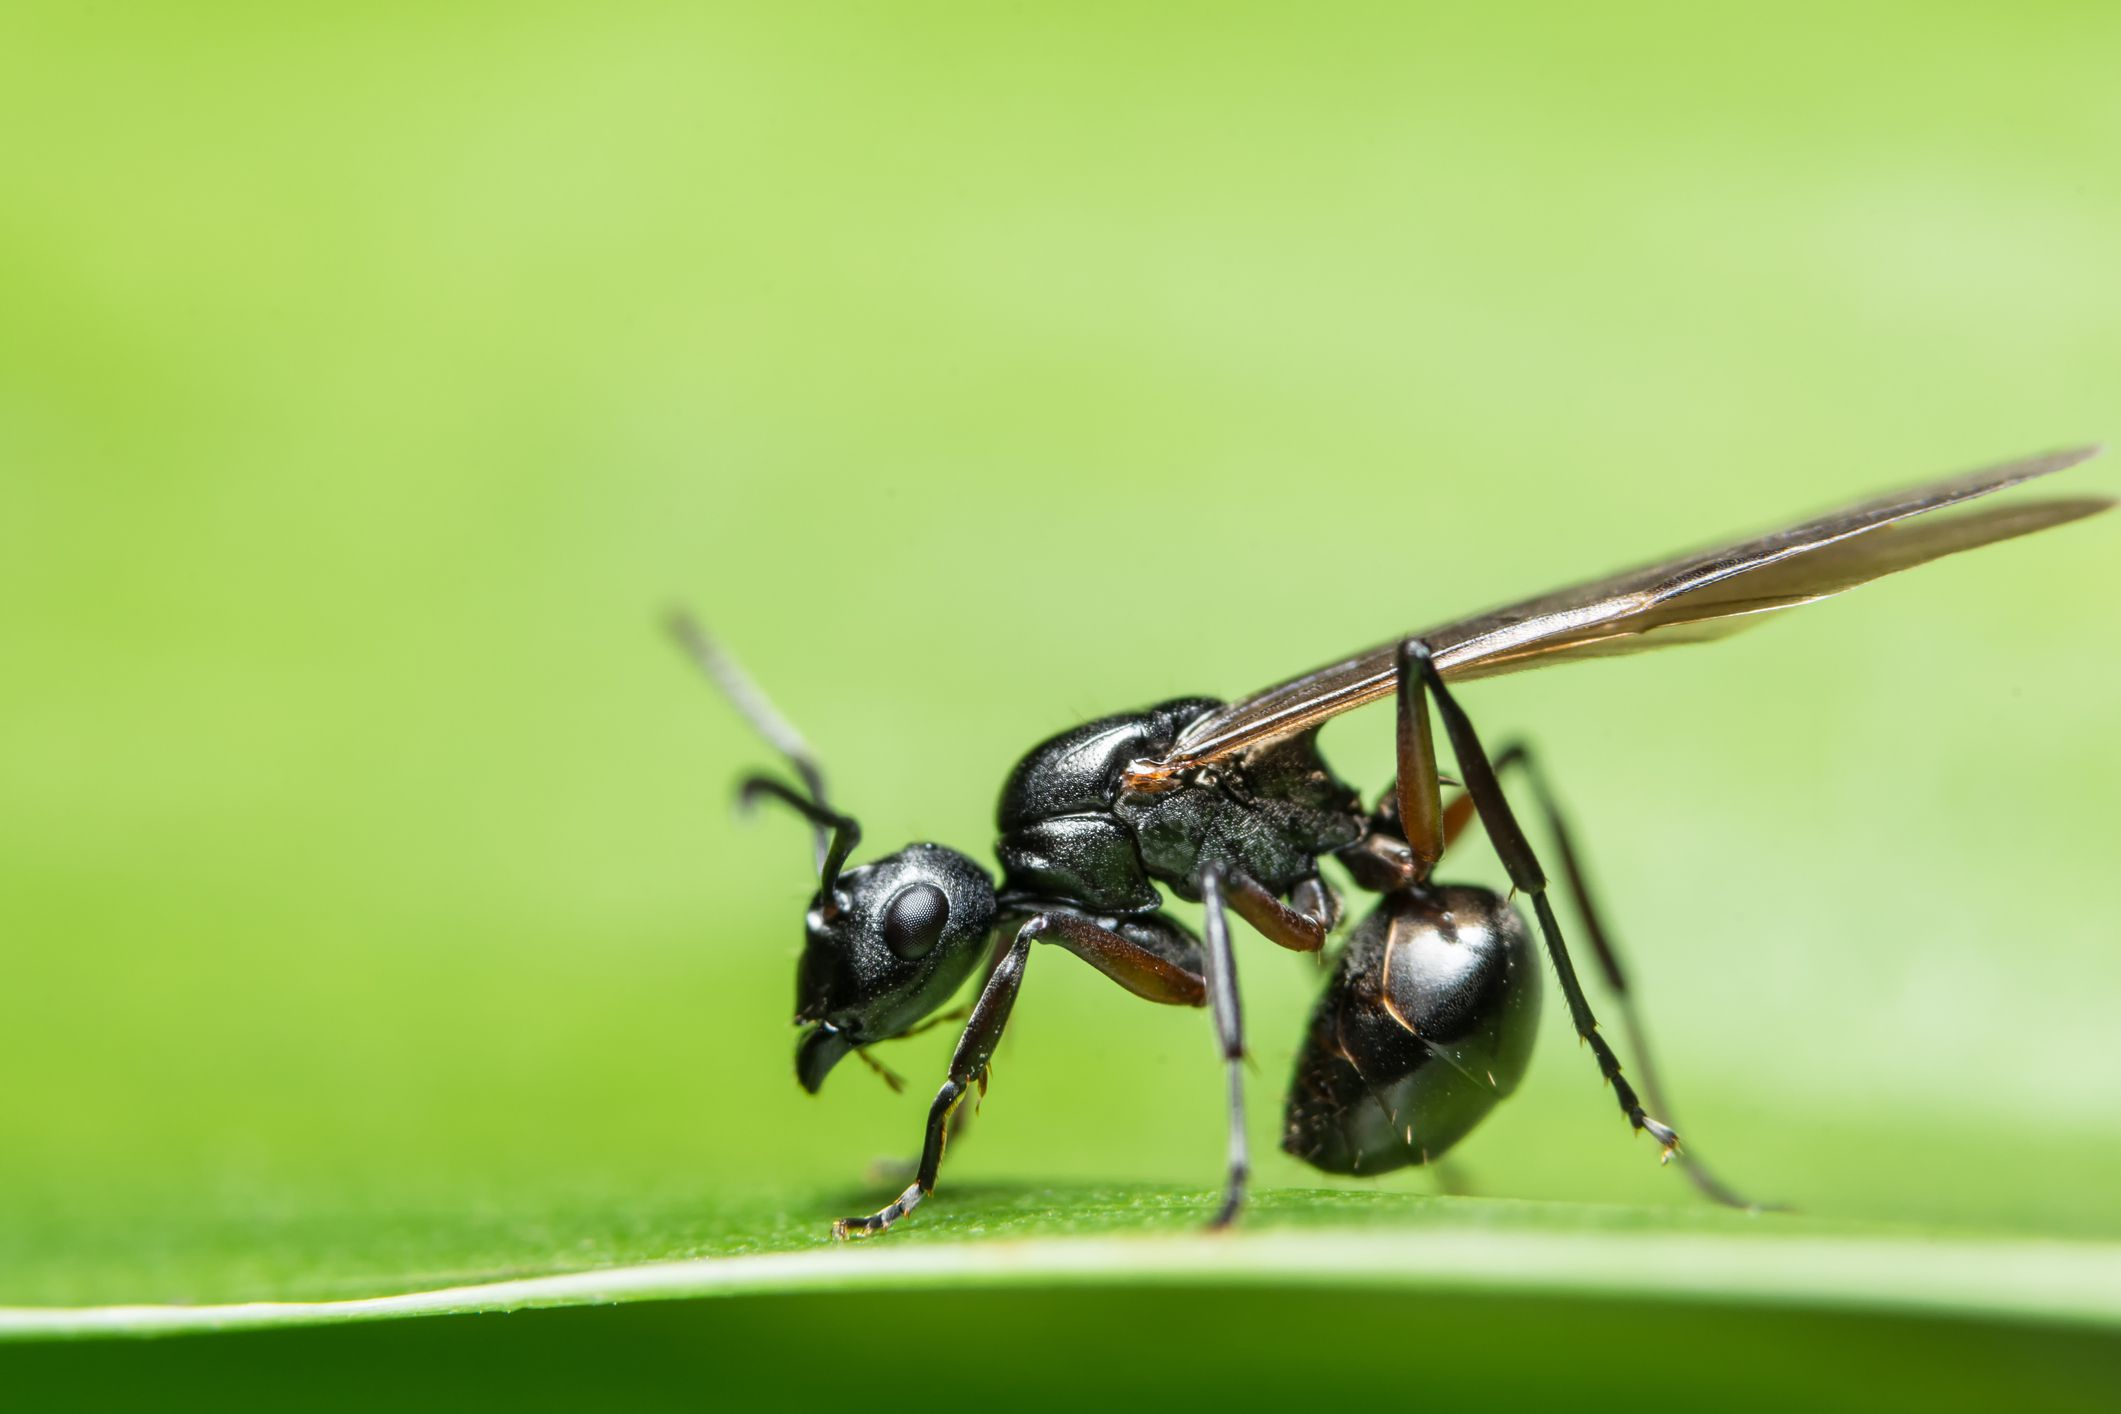 What to Do About Flying Ants in Your Home